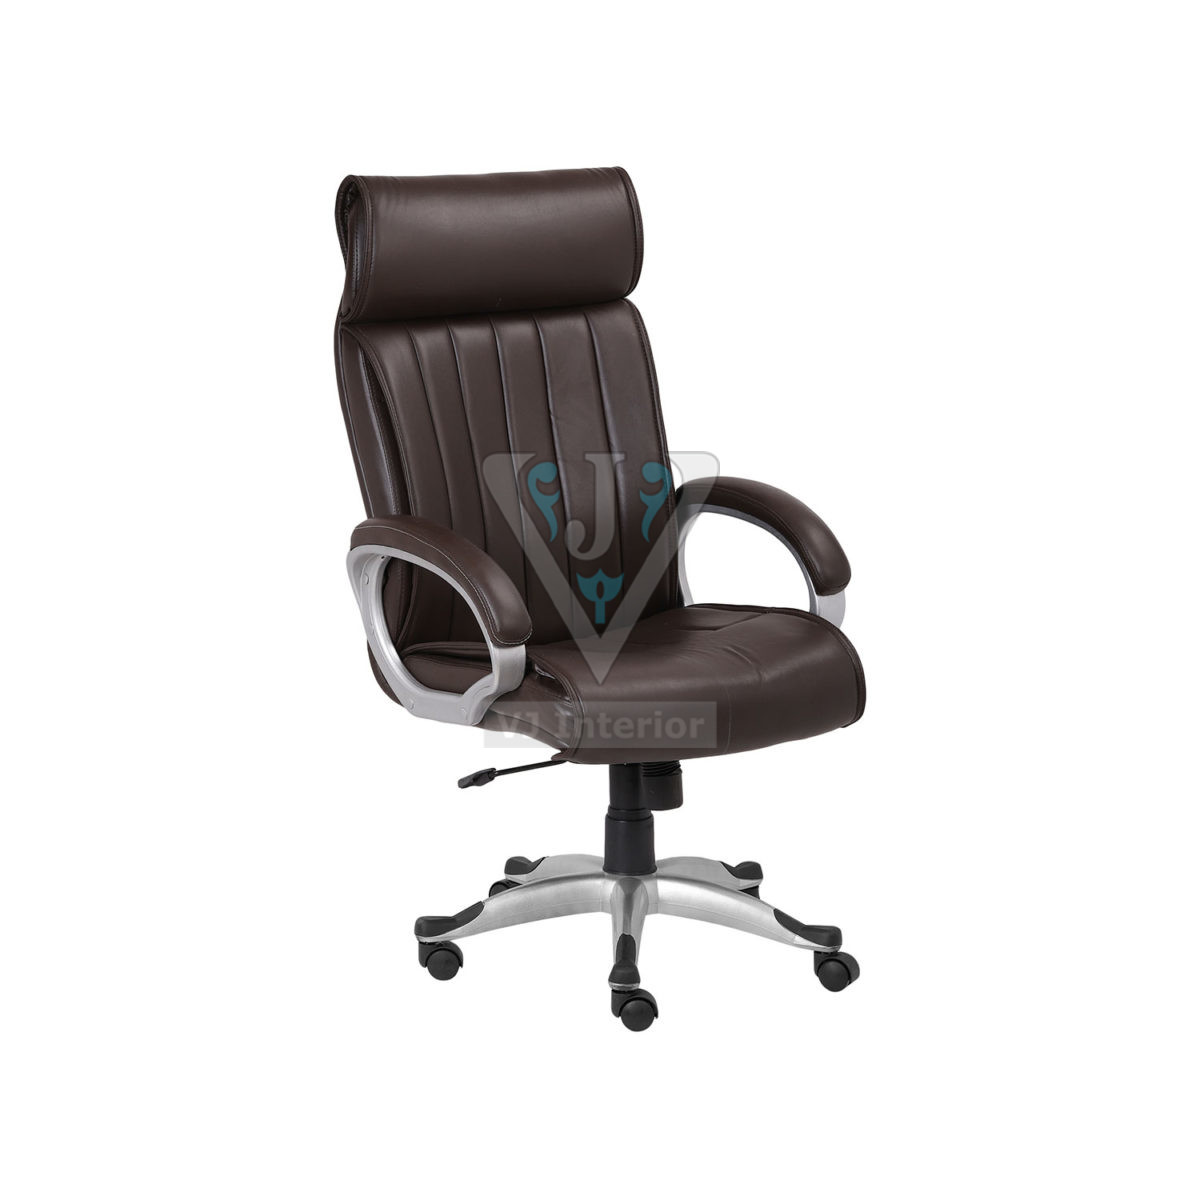 High Back Stylish Brown Office Executive Chair